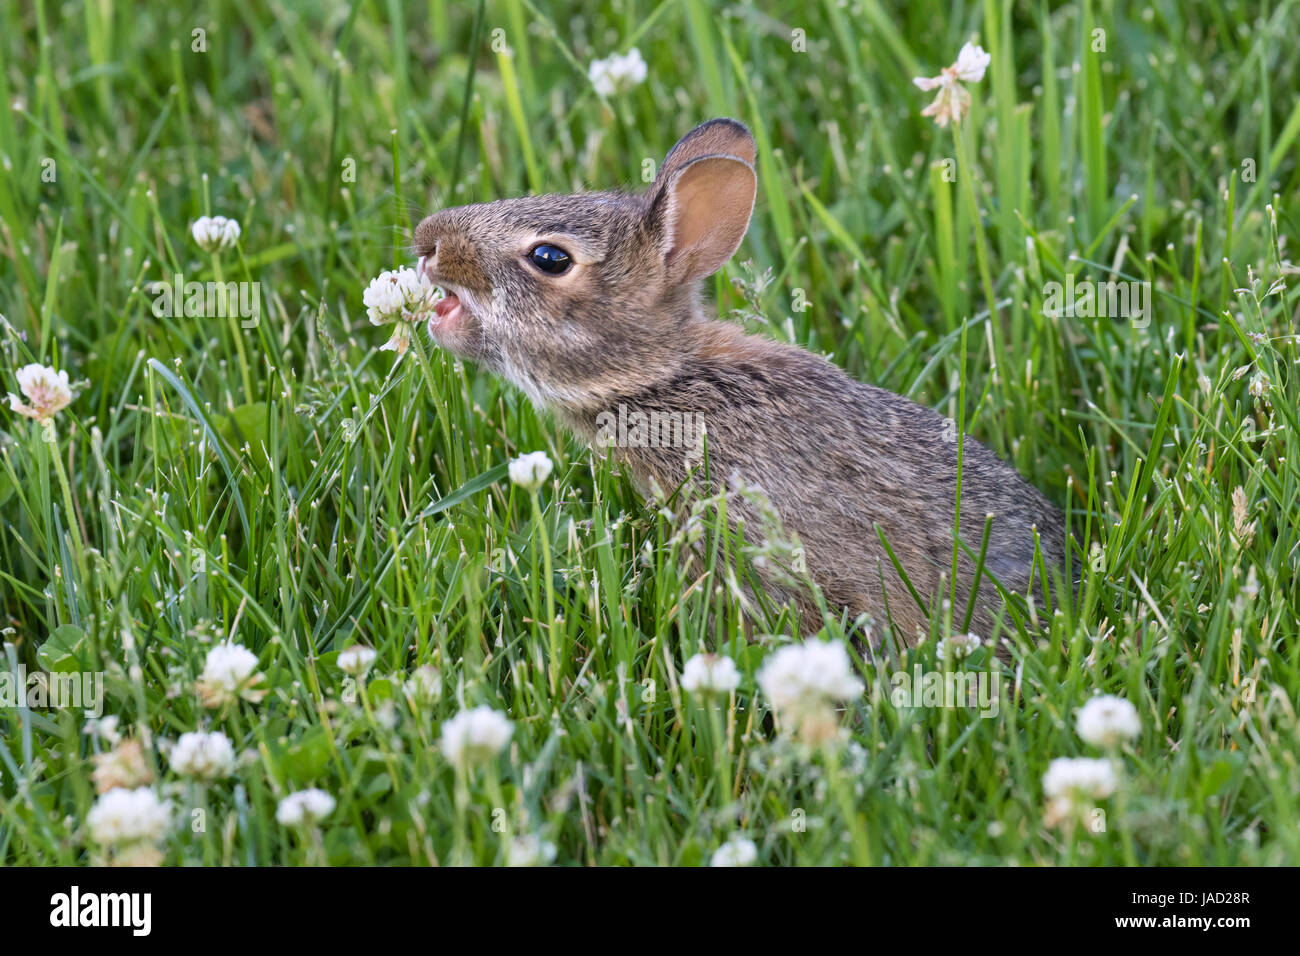 young eastern cottontail sylvilagus floridanus eating clover